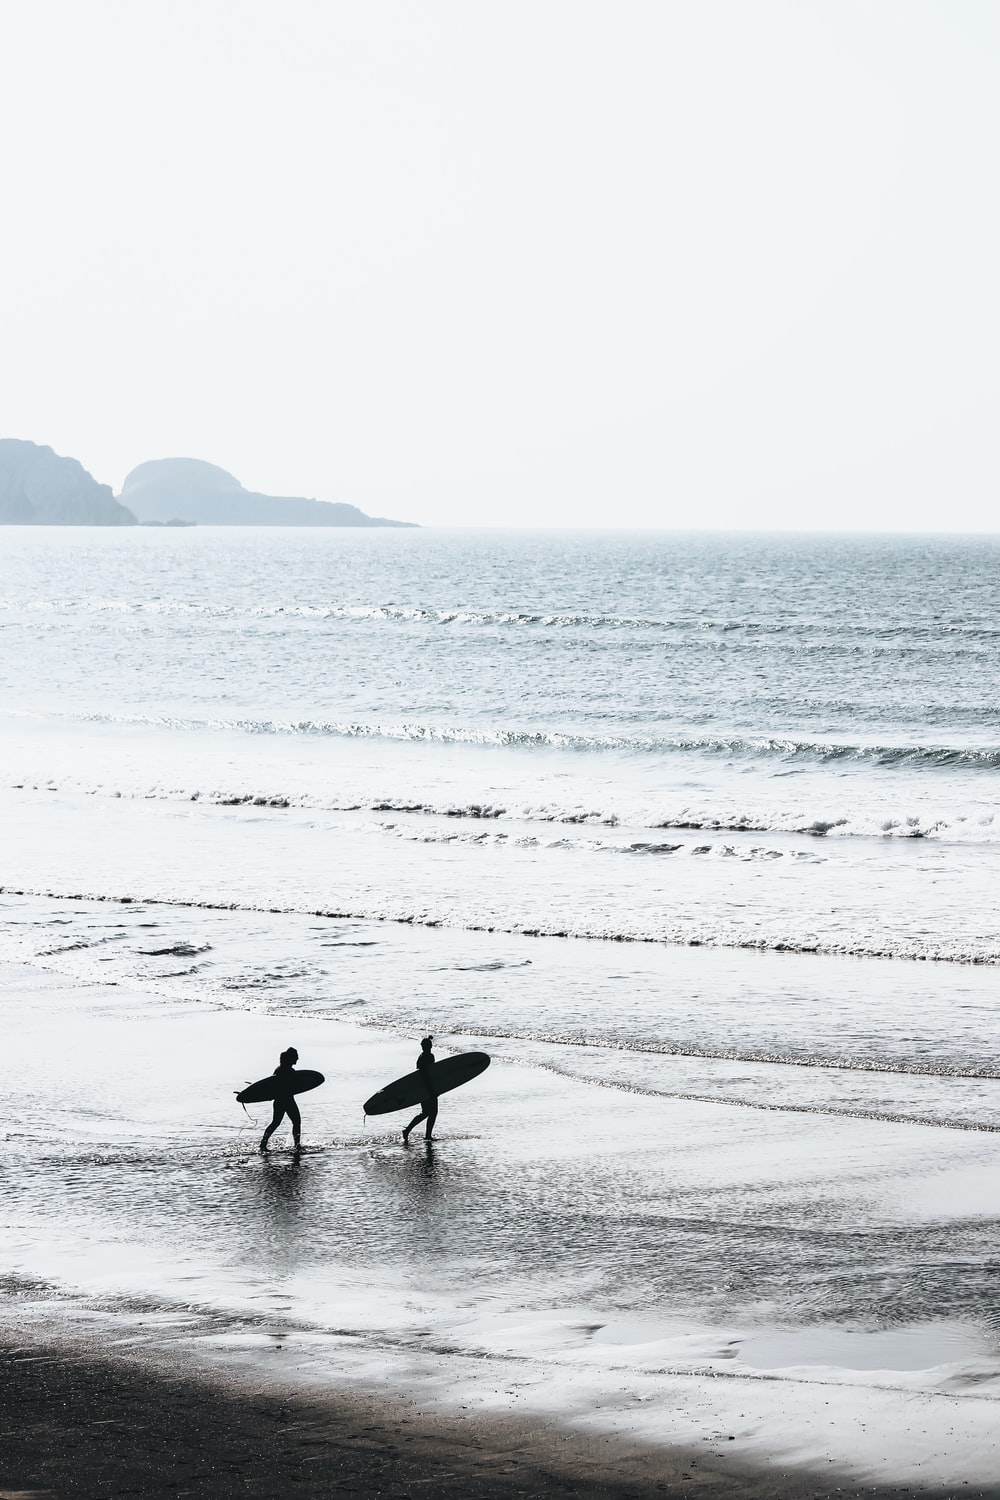 two people carrying surfboards at beach during daytime